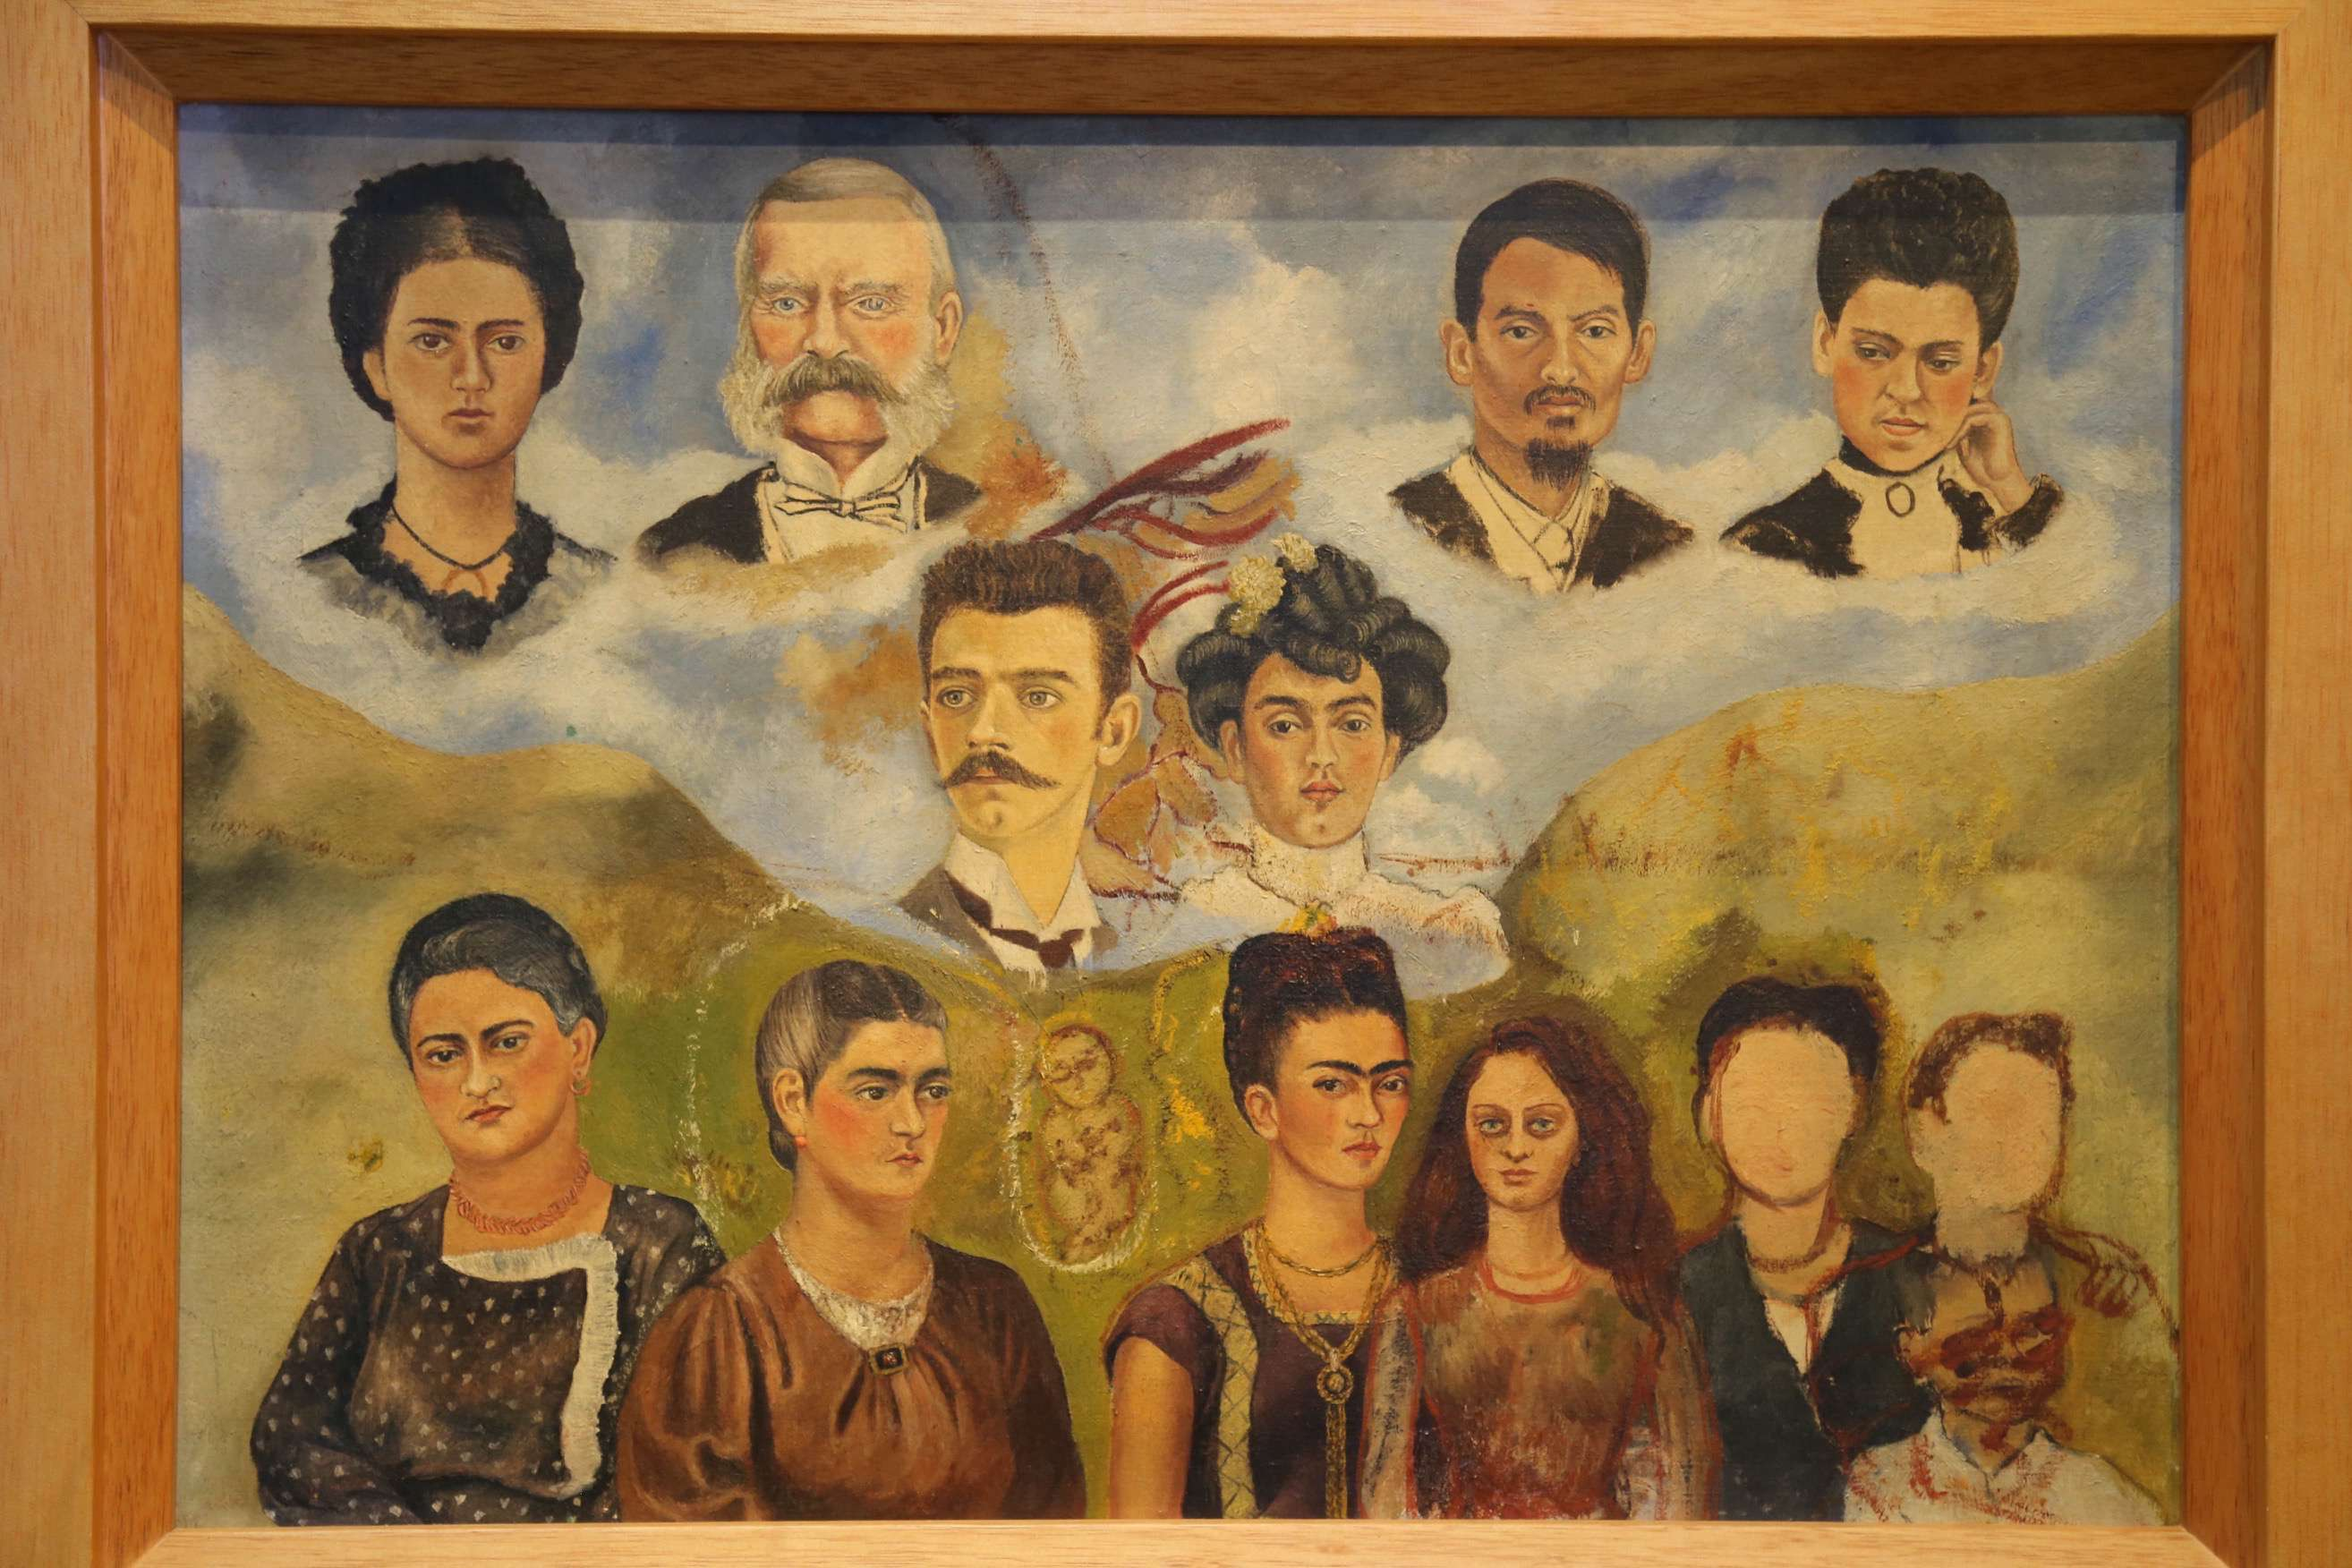 This family portrait done by Frida Kahlo shows the generations of her family and the people important in her life.